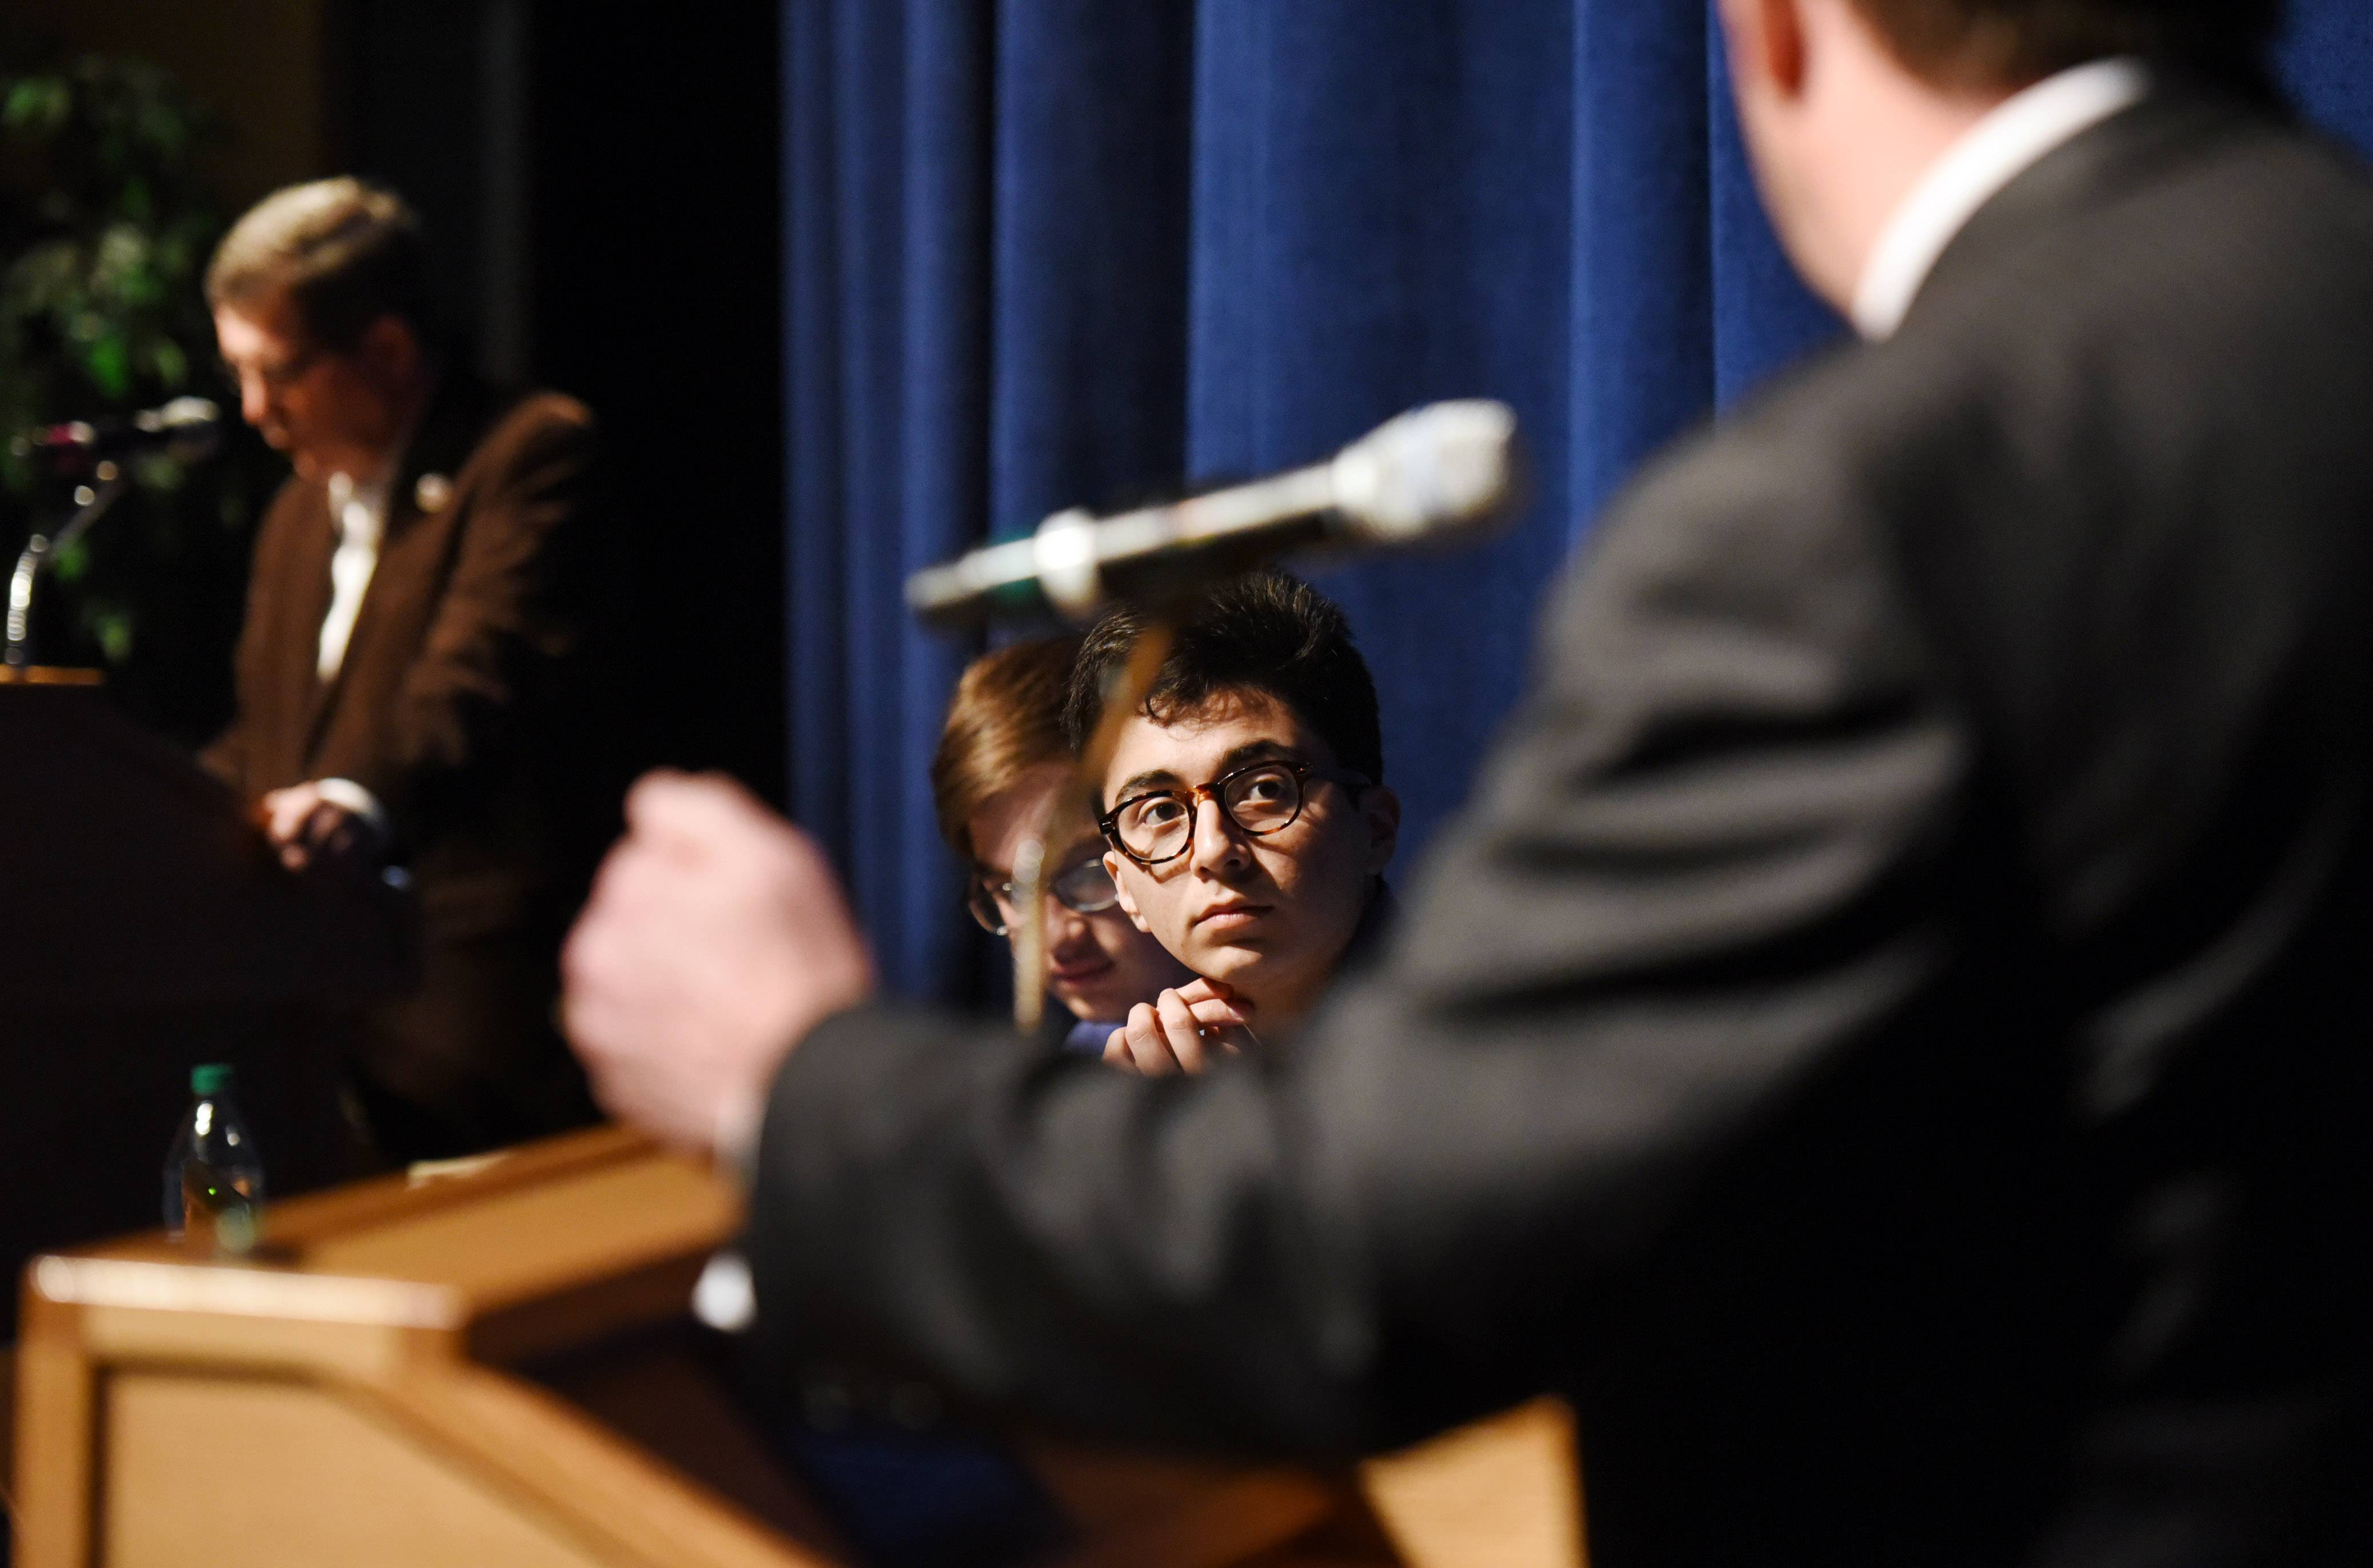 Libertyville High School students Jack Kosowski, second from left, and Alejandro Garcia Escobar listen to Libertyville mayoral candidates Terry Weppler, left, and Jeff Harger during a student-led town hall meeting Friday.